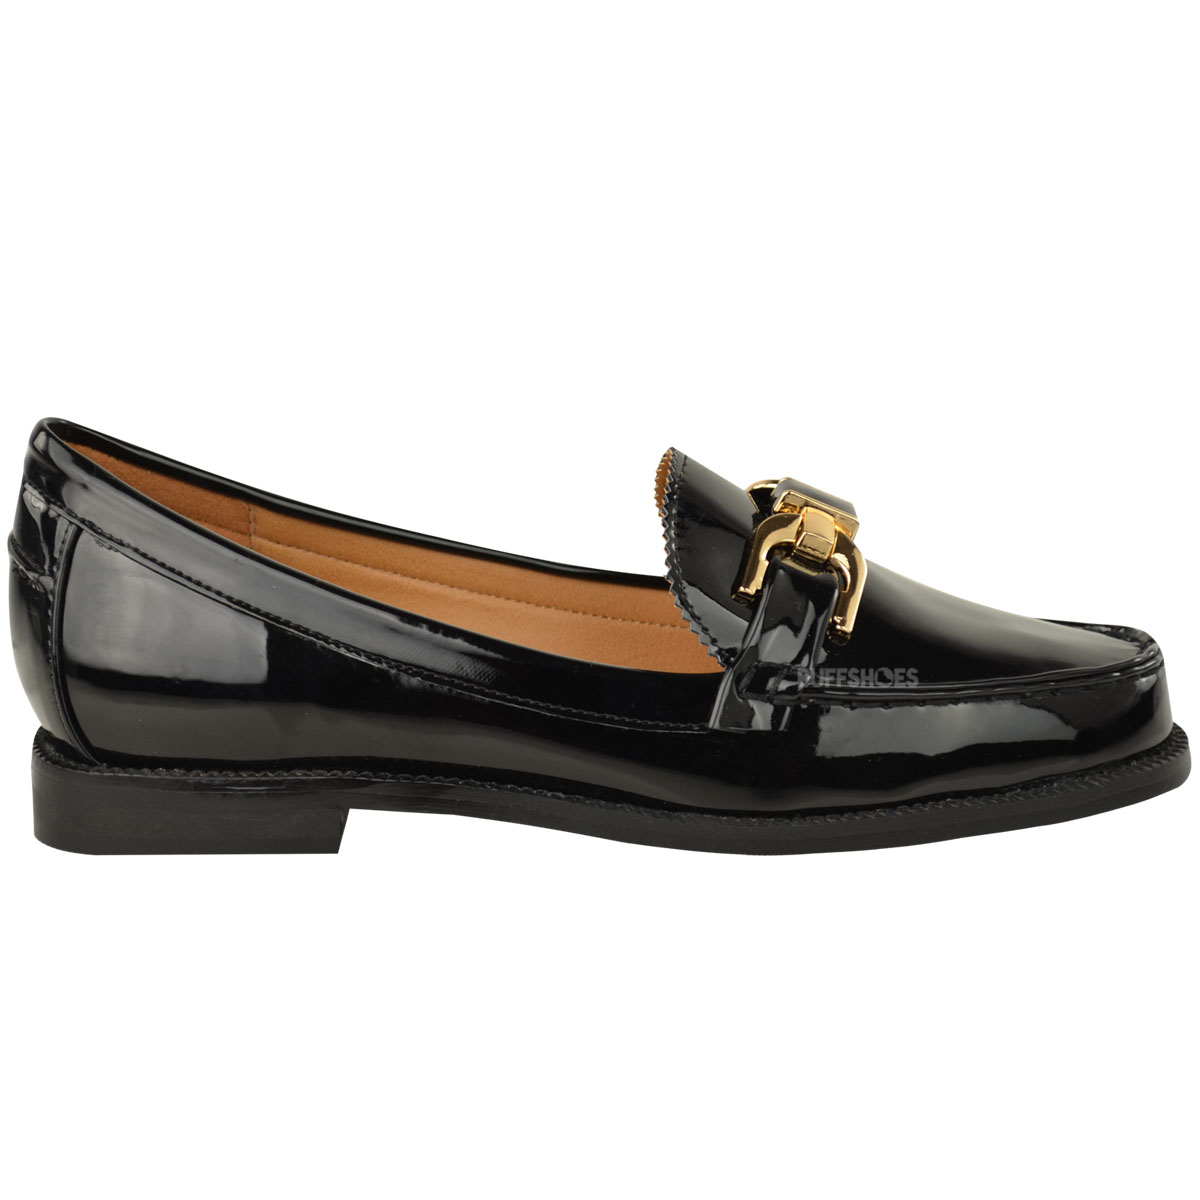 Two Tone Flat Shoes Ladies